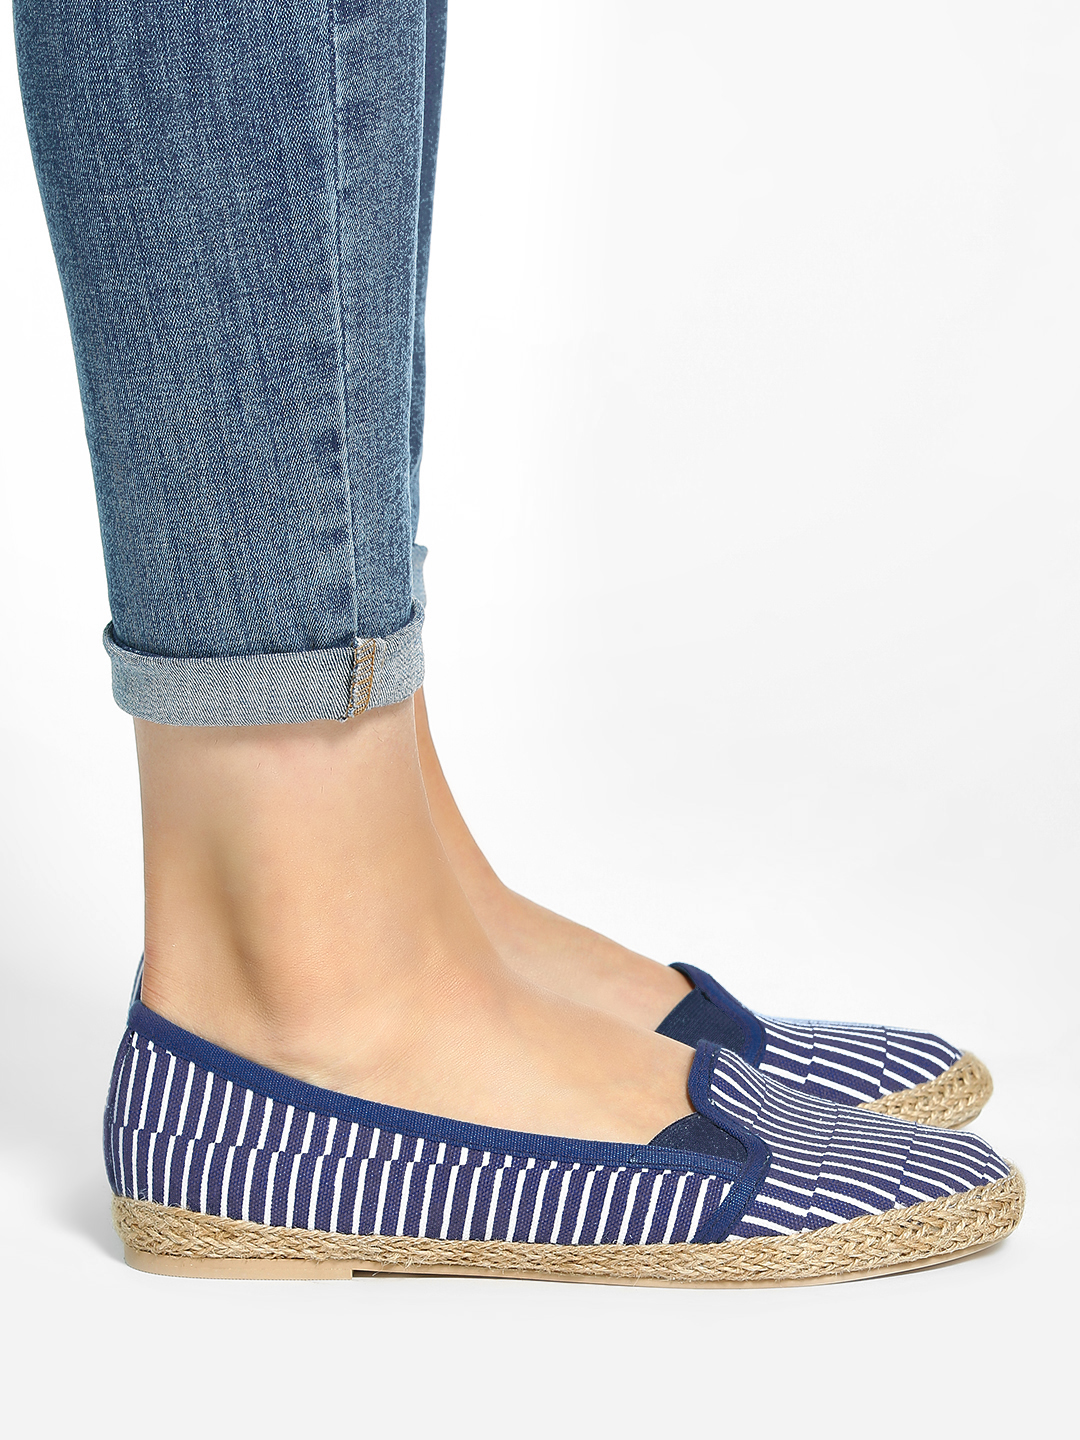 KOOVS Navy/White Broken Stripe Print Canvas Ballerinas 1